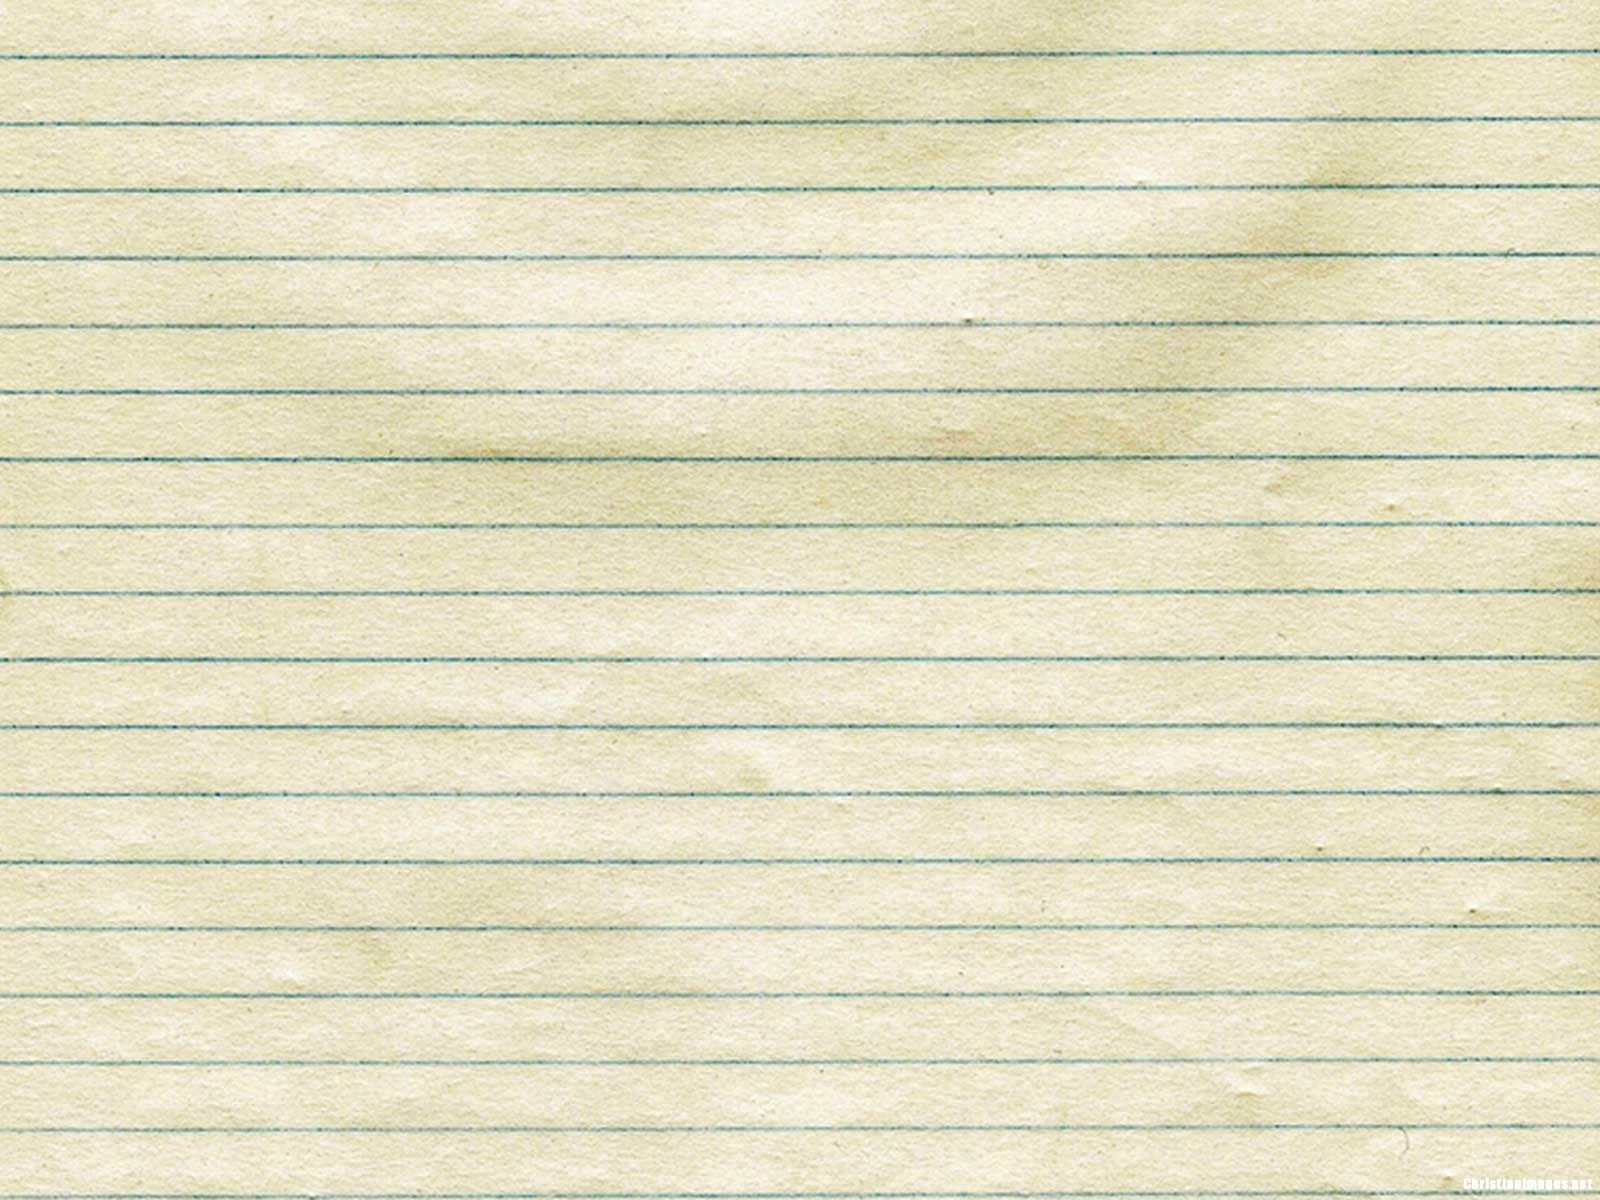 School Paper Background